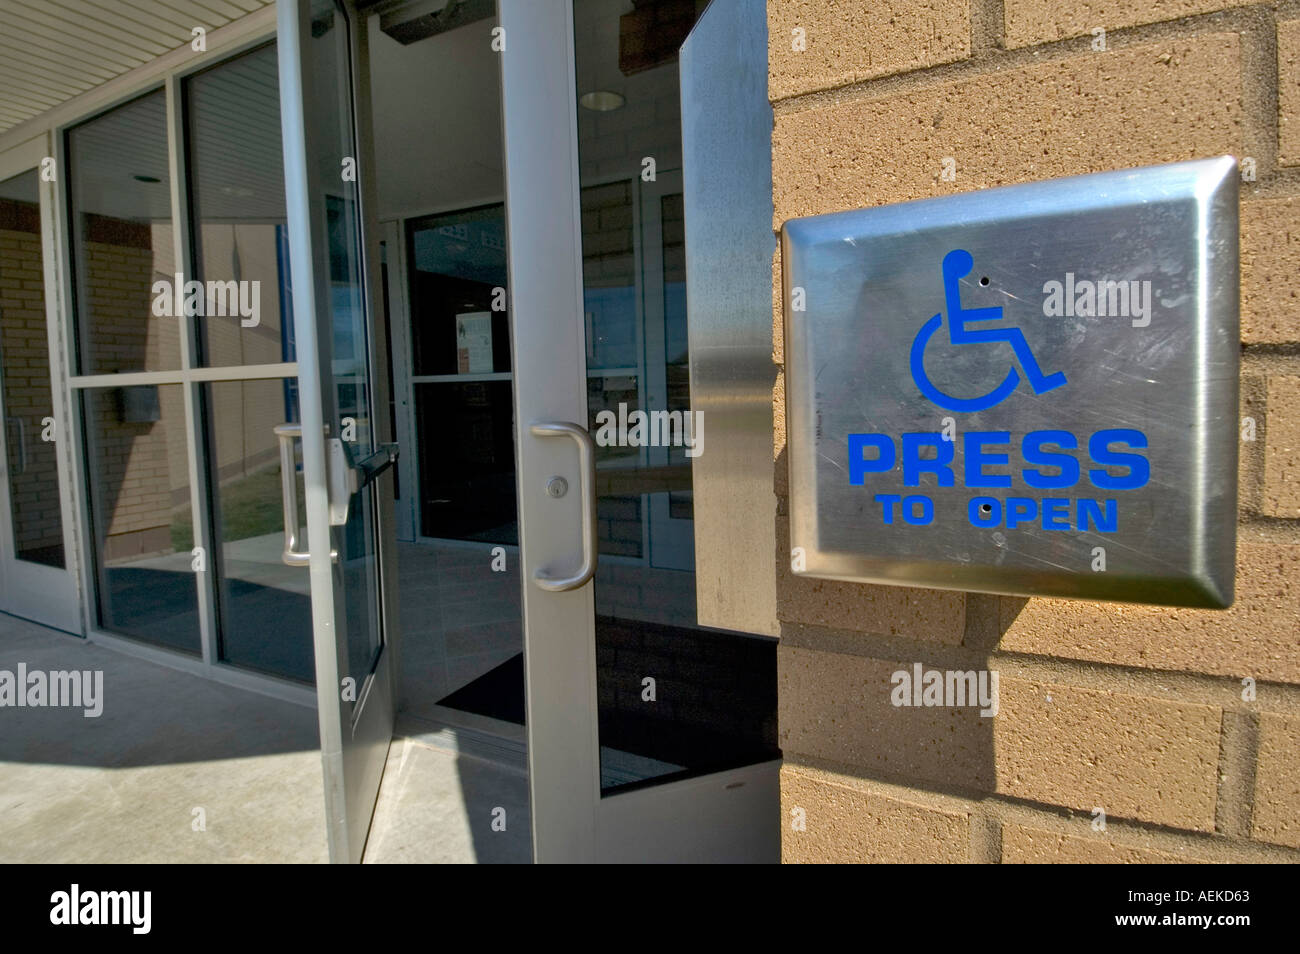 Attractive Senior Male Uses Handicap Accessible Door To Enter A Building   Stock Image